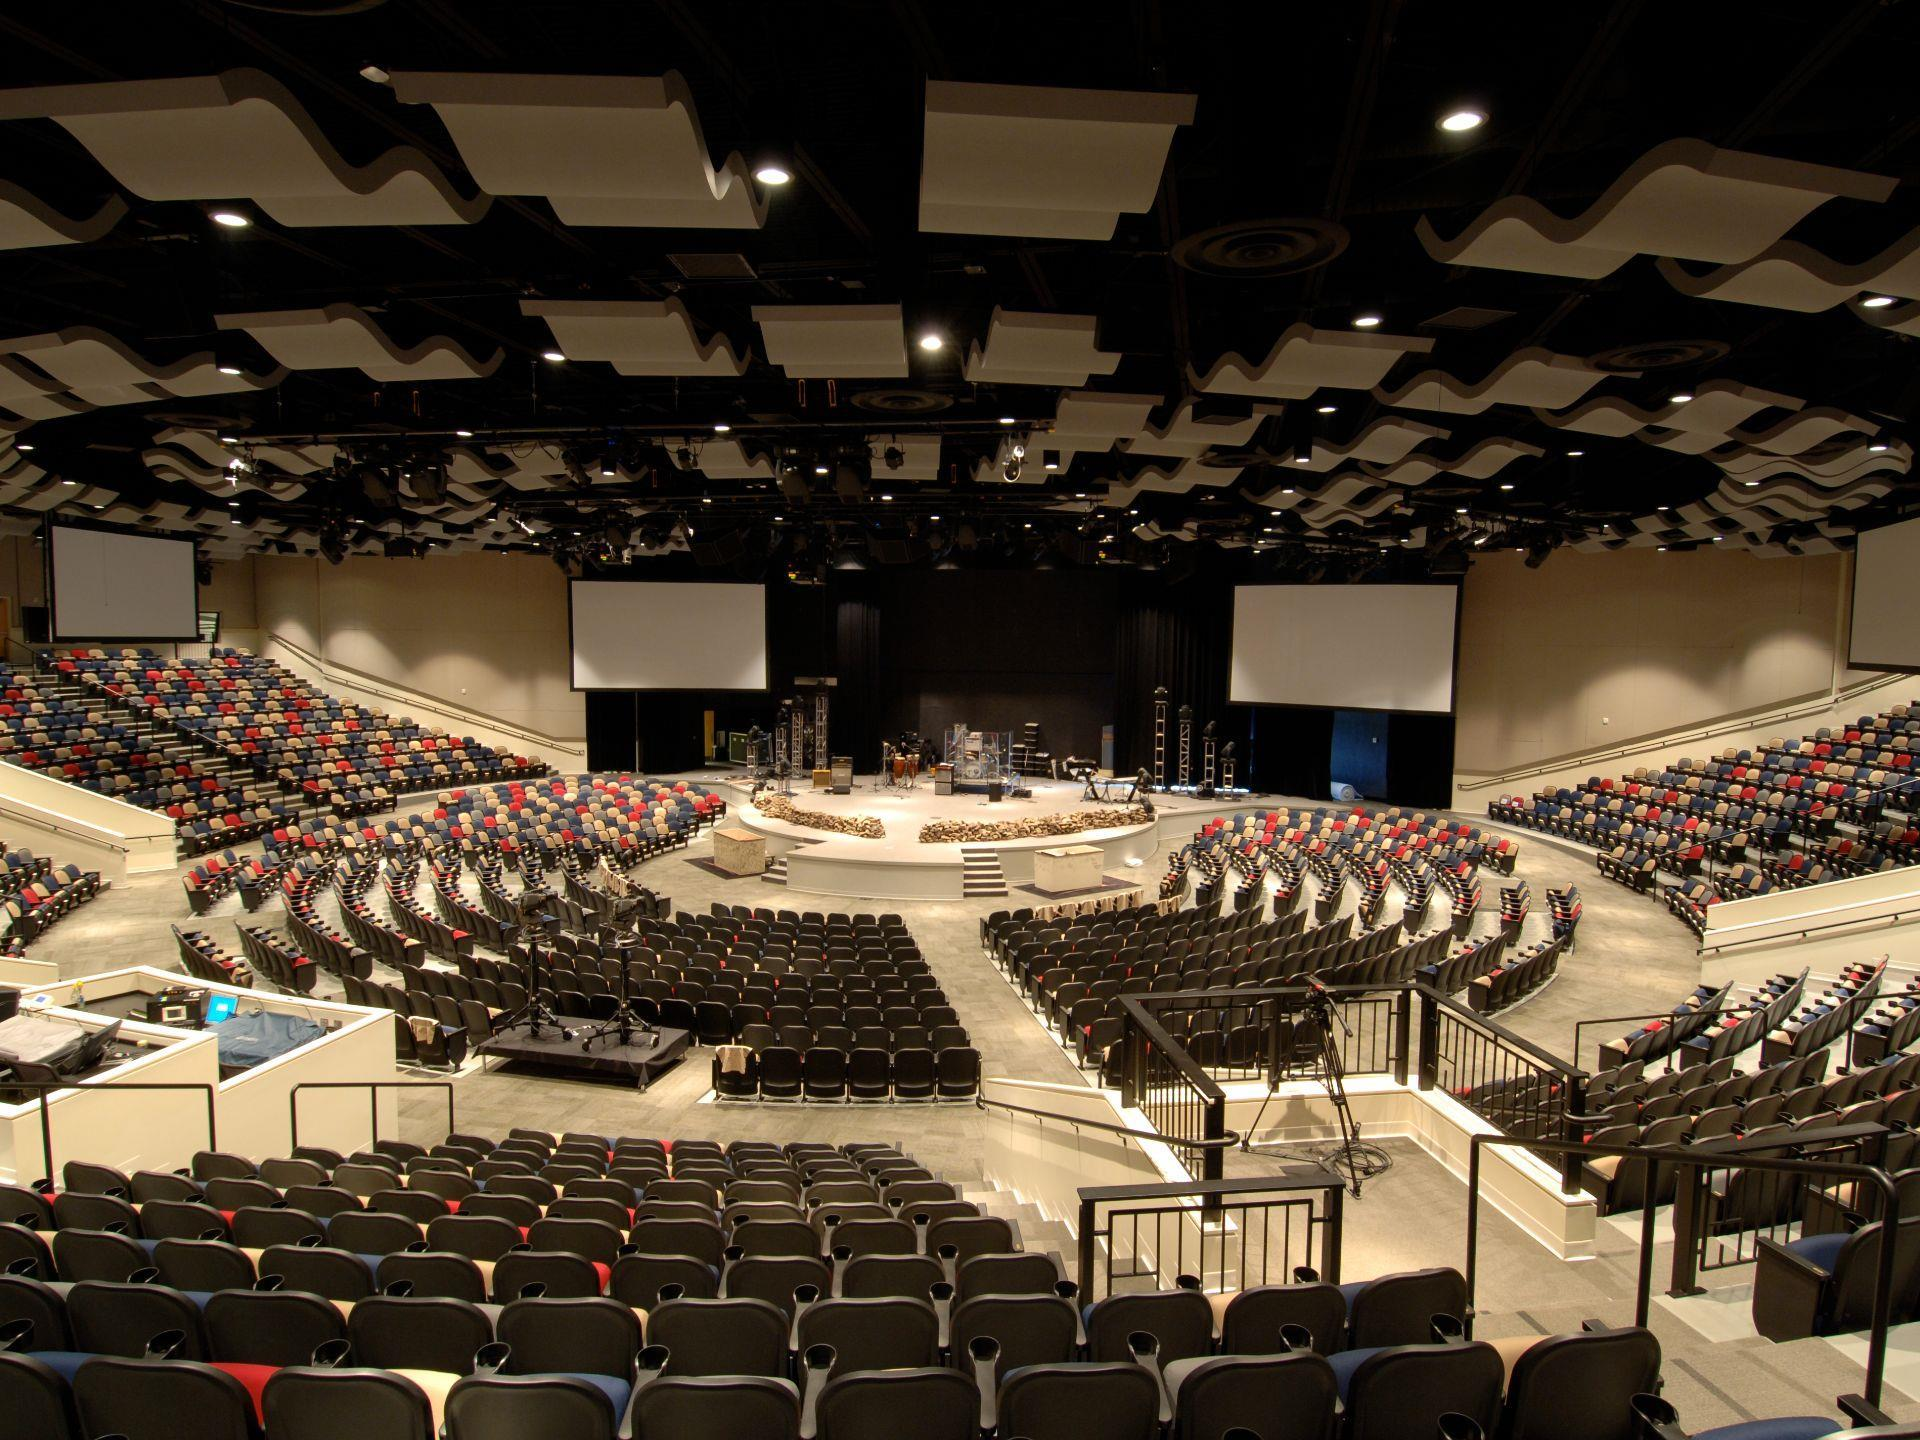 2,600-stadium seating worship center including a stage and wide screen TV monitors